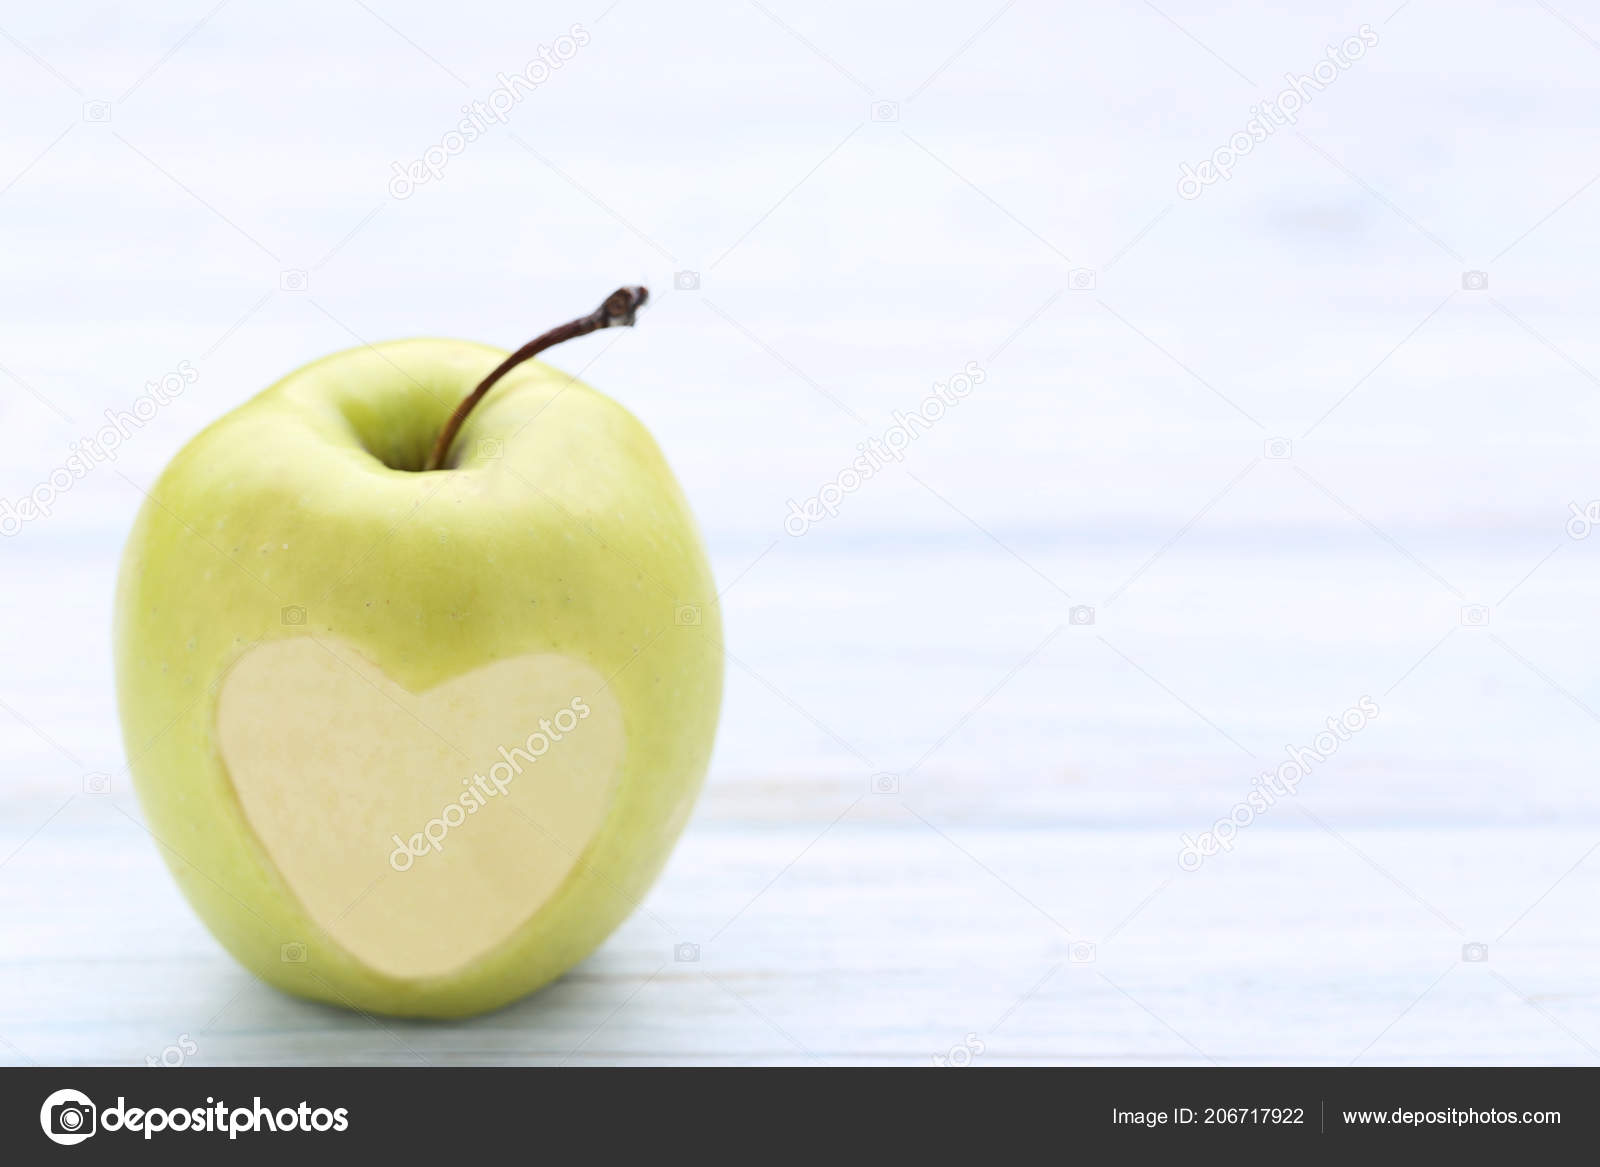 Green Apple Cutout Heart Shape Wooden Table Stock Photo